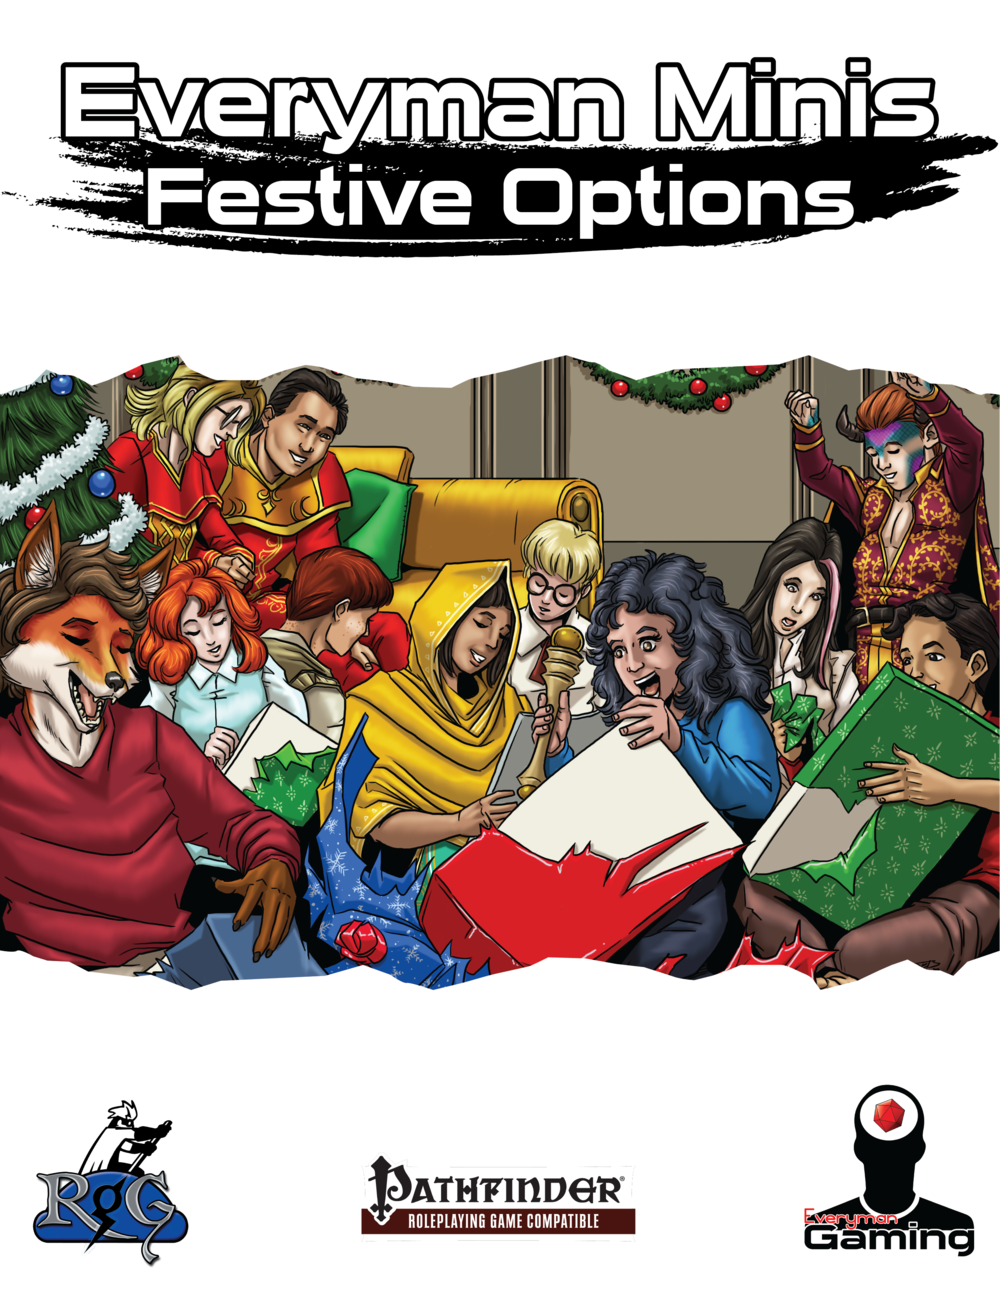 46 EMM Festive Options.png